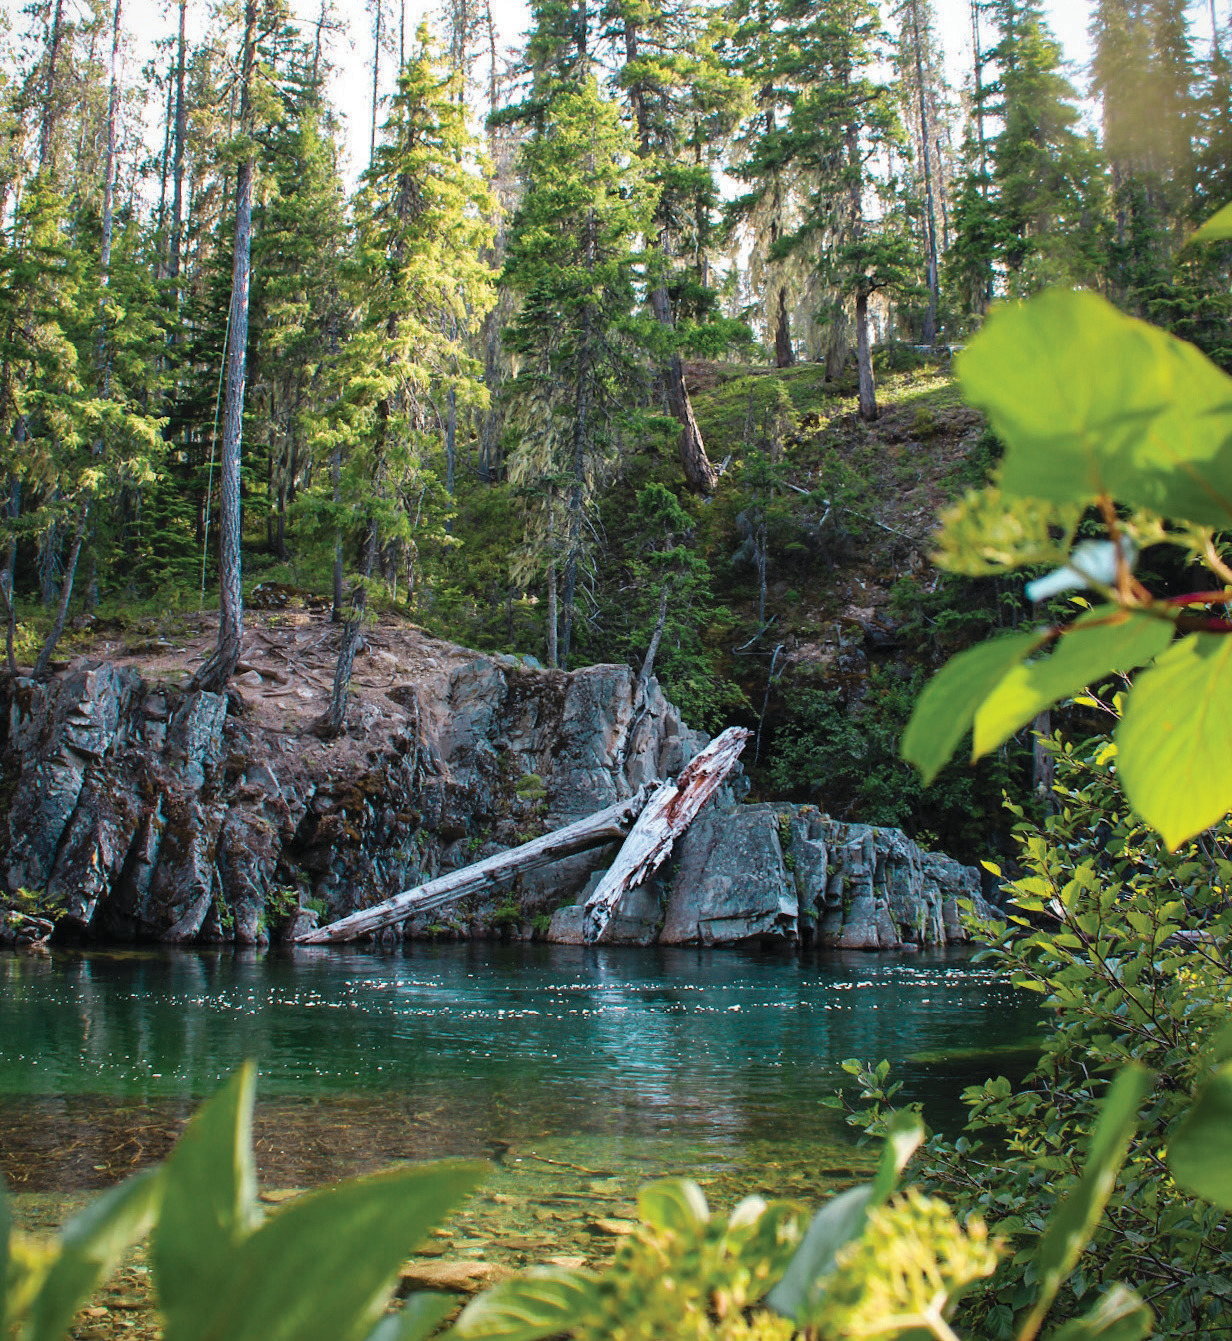 For a sweet summer escape in the woods, try Cooper Hole near Salmon La Sac Campground on the edge of the Alpine Lakes Wilderness.